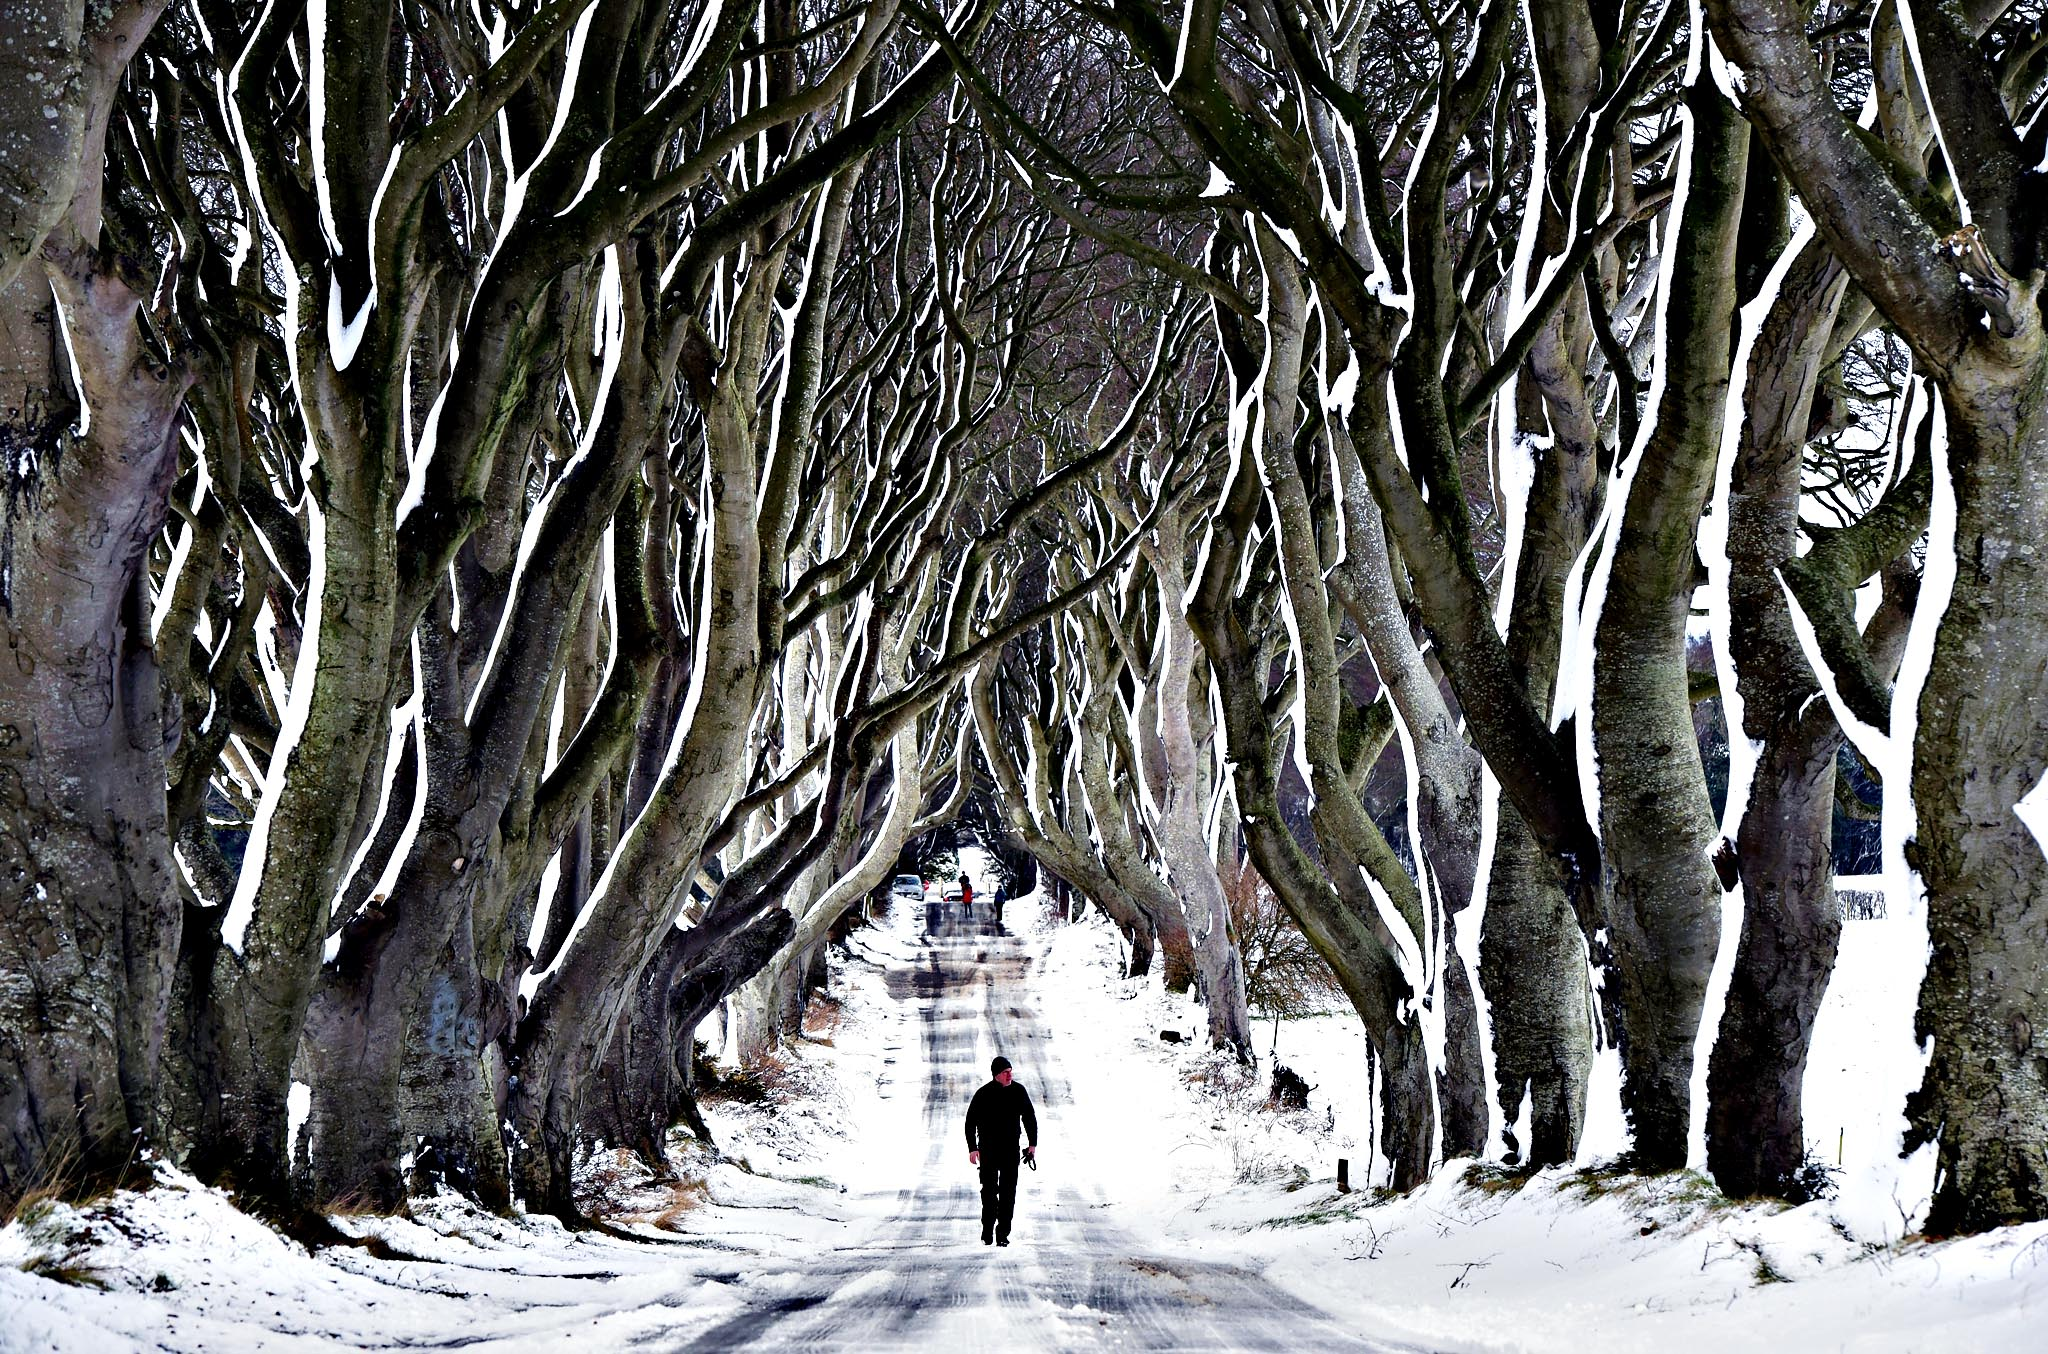 A man walks along the famous Dark Hedges avenue of trees on January 14, 2015 in Antrim, Northern Ireland. The province experienced heavy snowfall as a cold weather front hit the northern part of the United Kingdom today causing major traffic disruption and school closures.